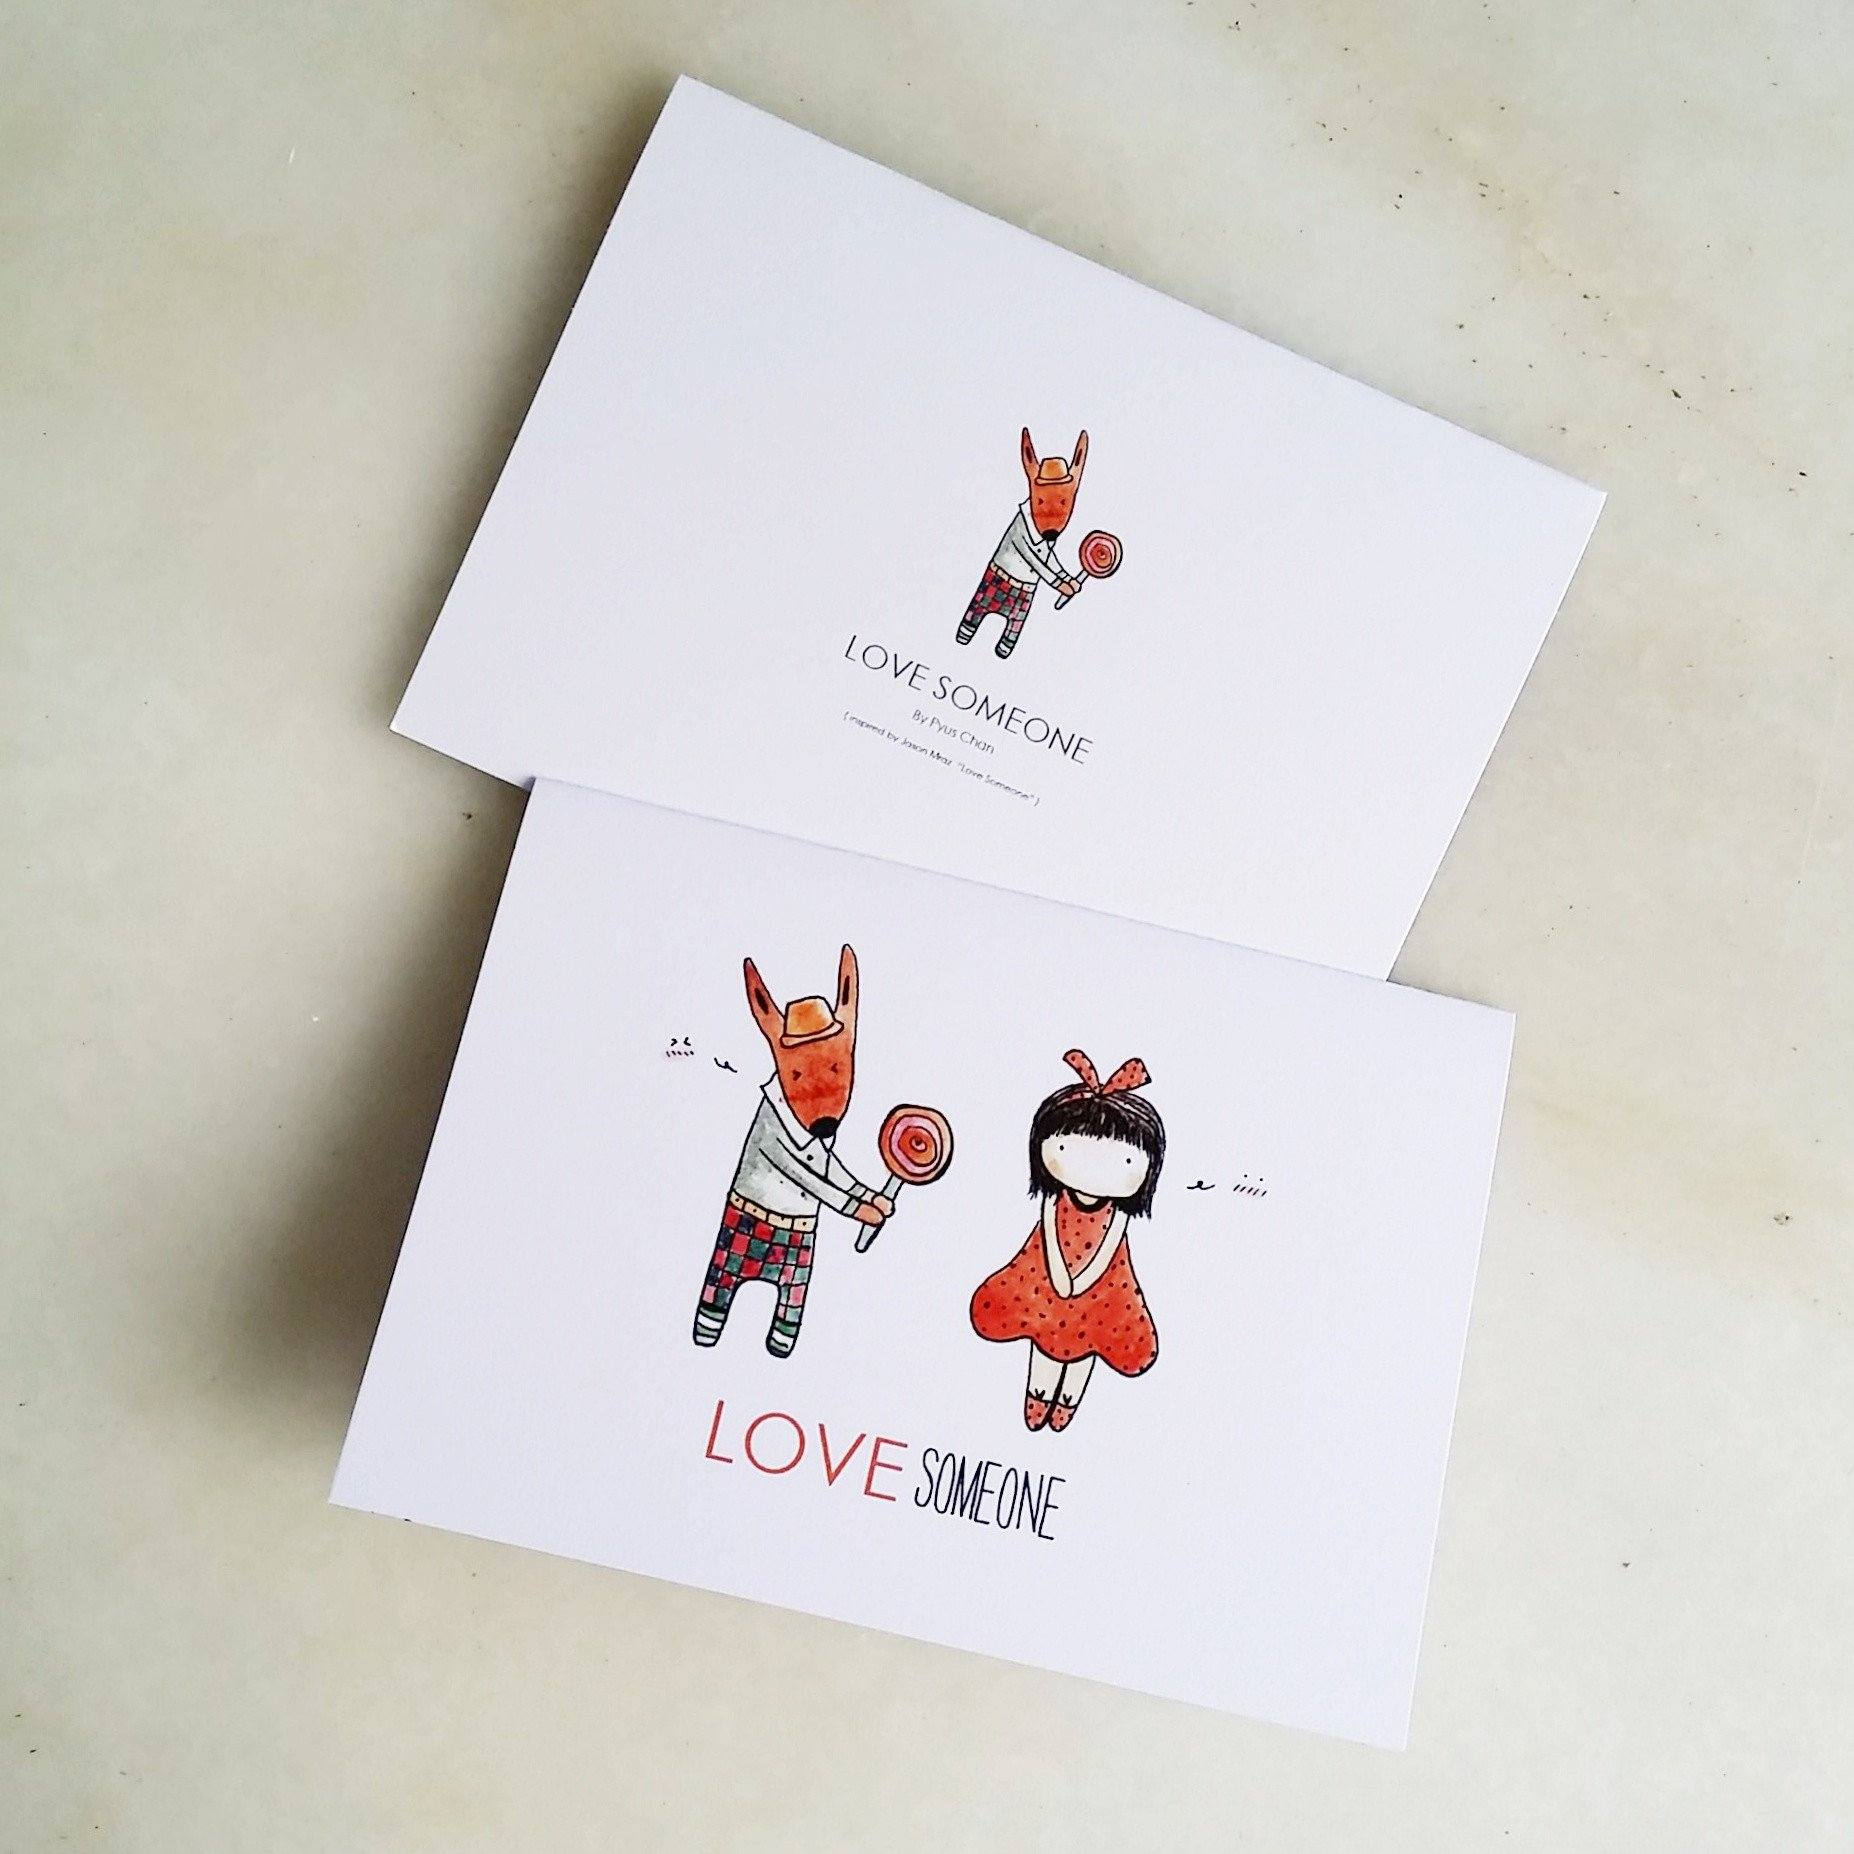 TDGHS Greeting Card - Love Someone Generic Greeting Cards TDGHS